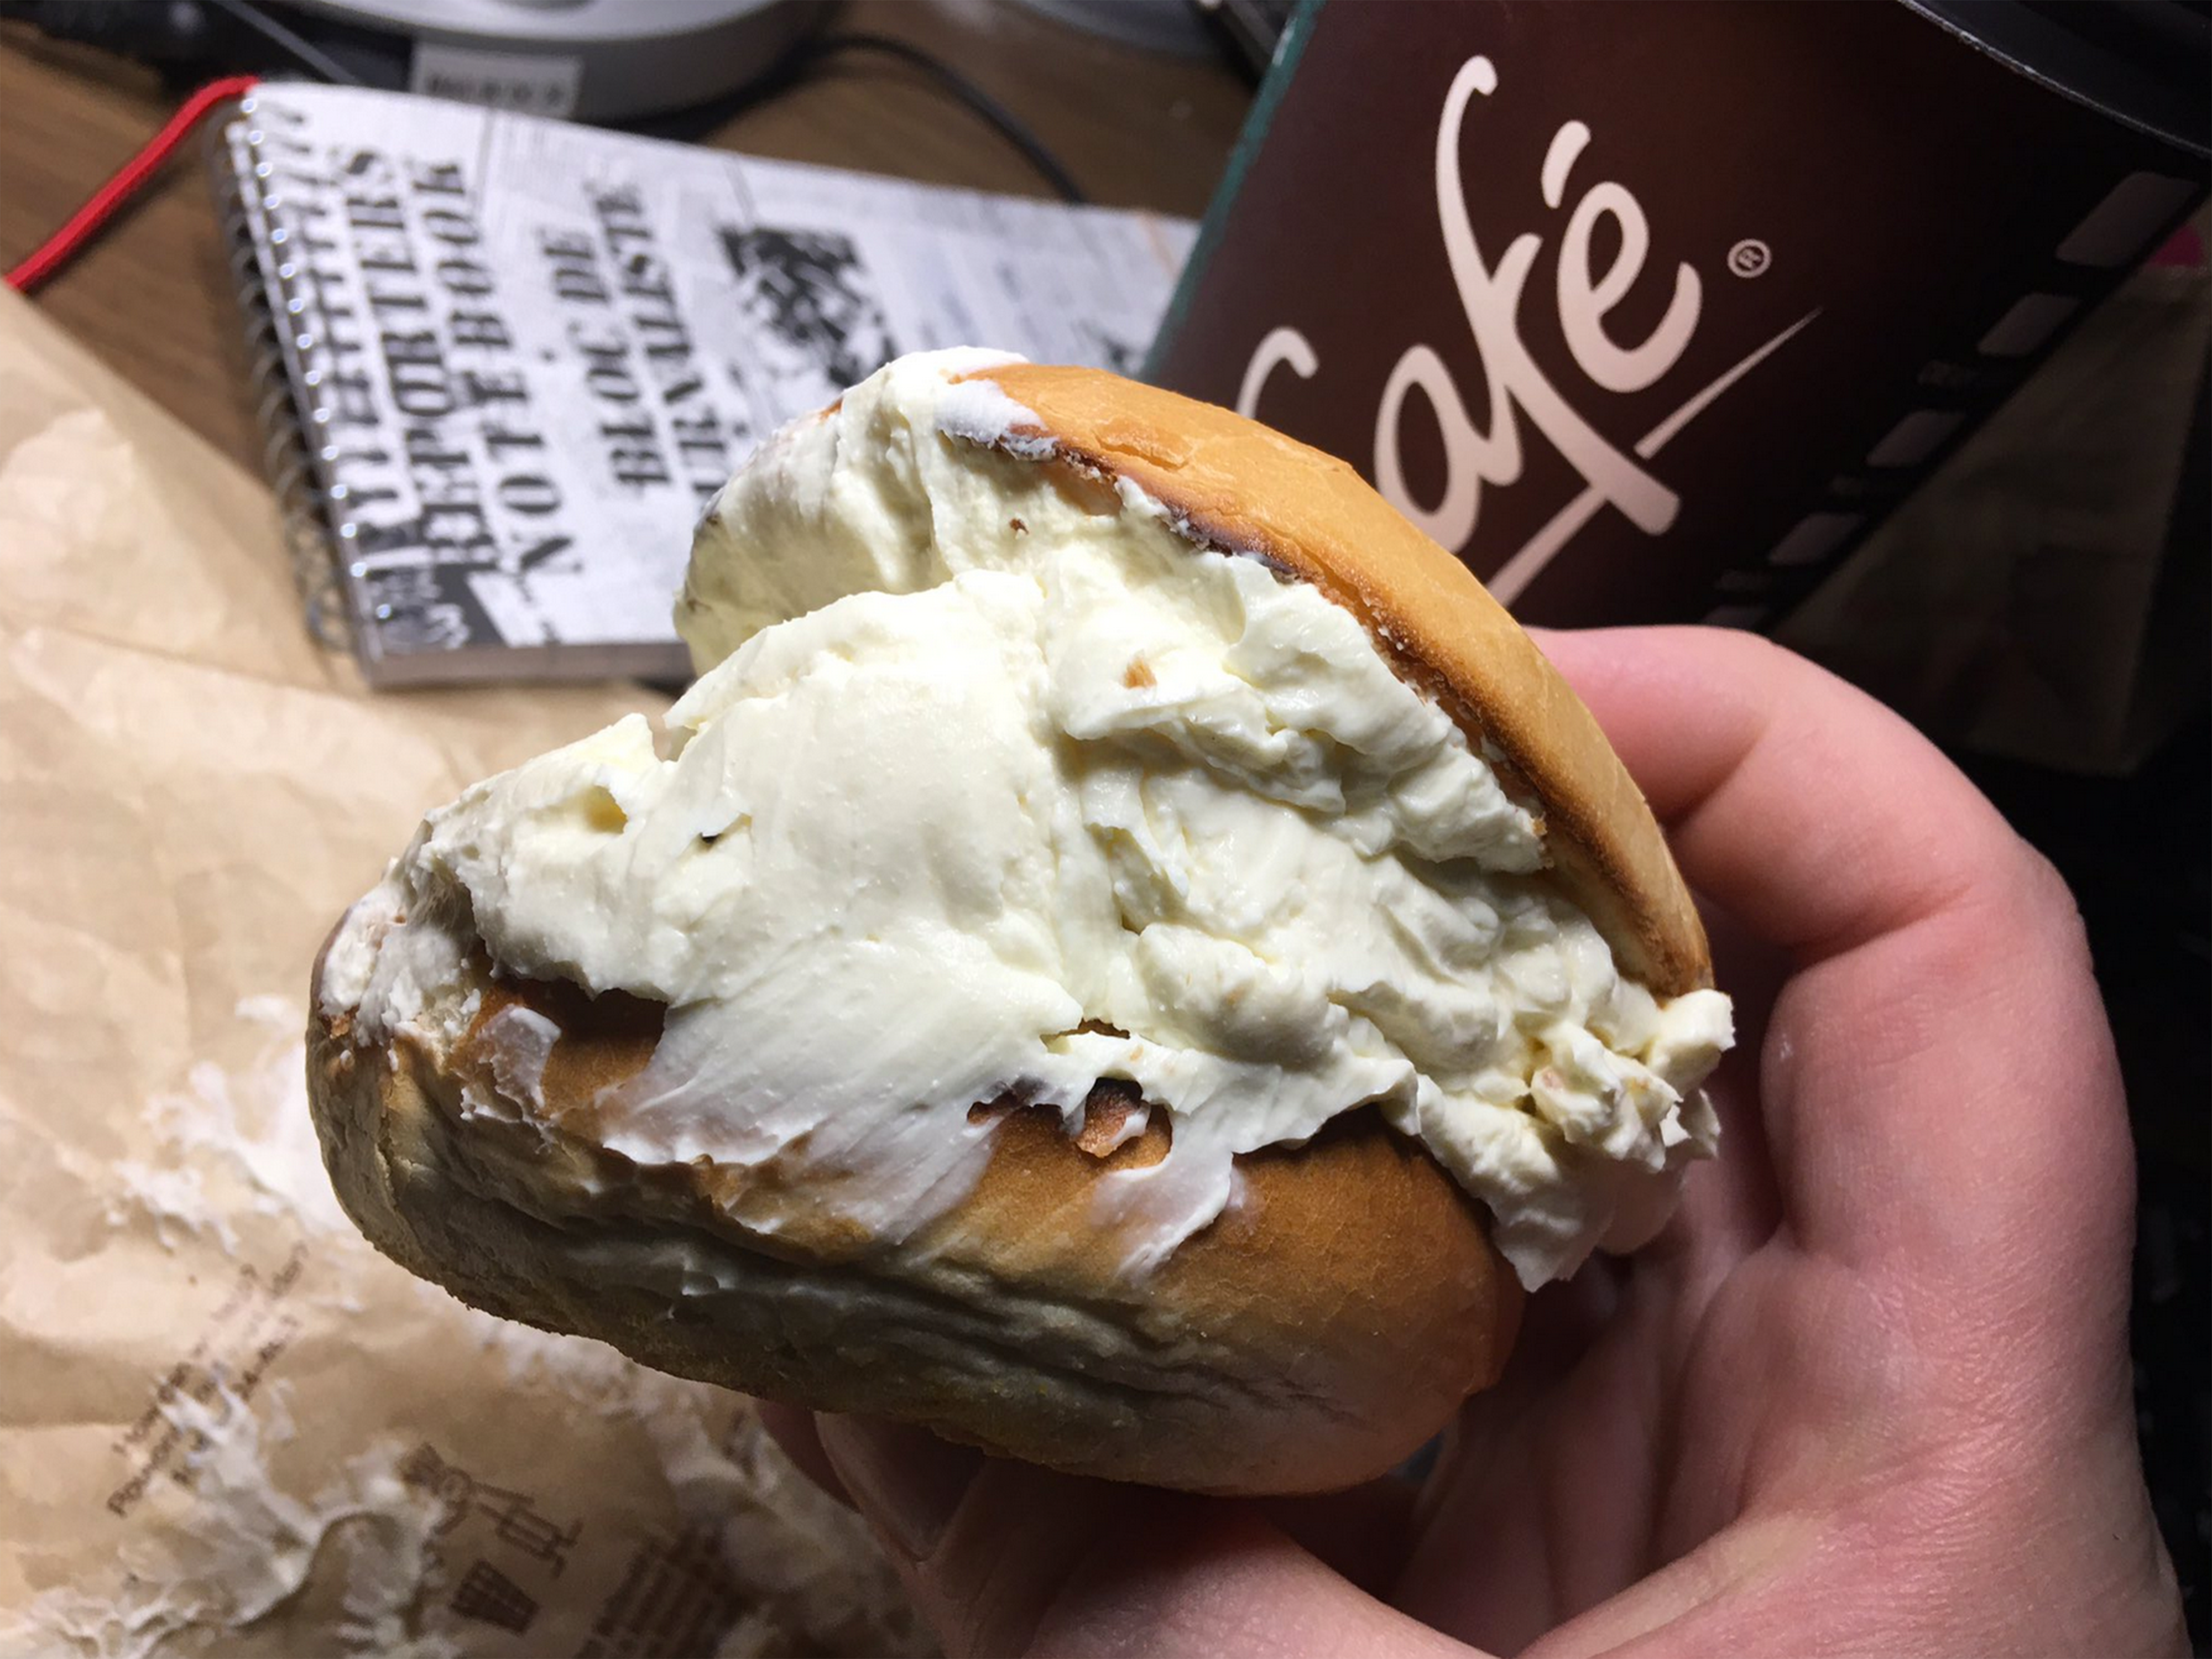 Get a Load of This Bagel With Way Too Much Cream Cheese